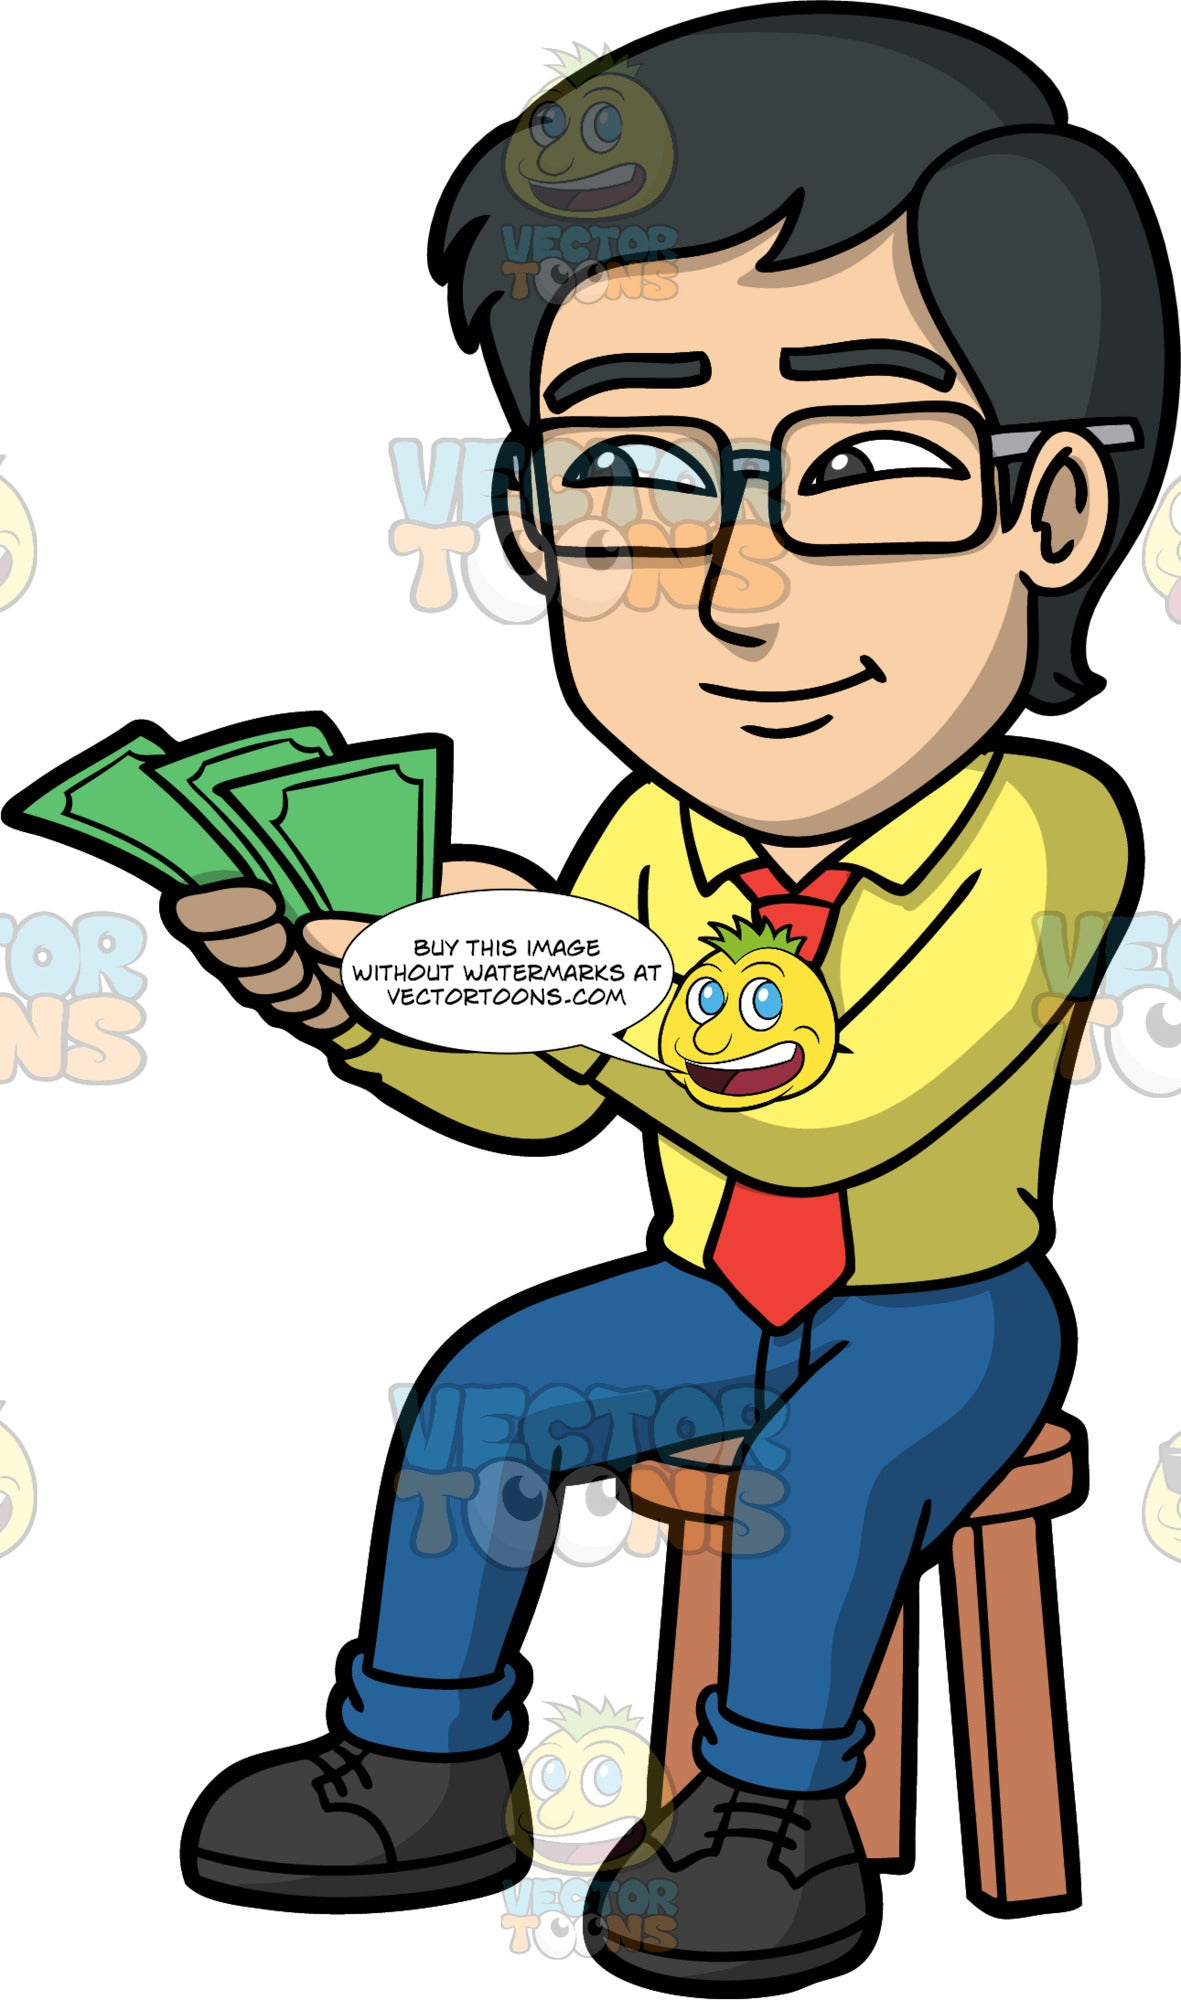 Simon Counting Cash In His Hands. An Asian man wearing dark blue pants, a yellow dress shirt, a red tie, and black shoes, sitting on a stool and counting the money he is holding